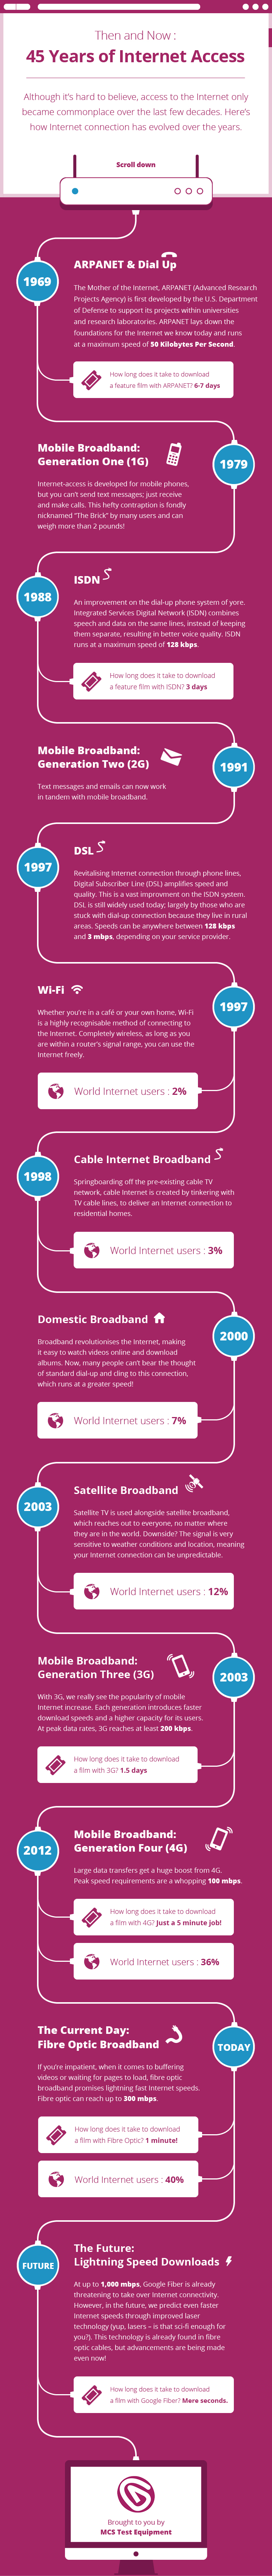 45 Years of Internet Access